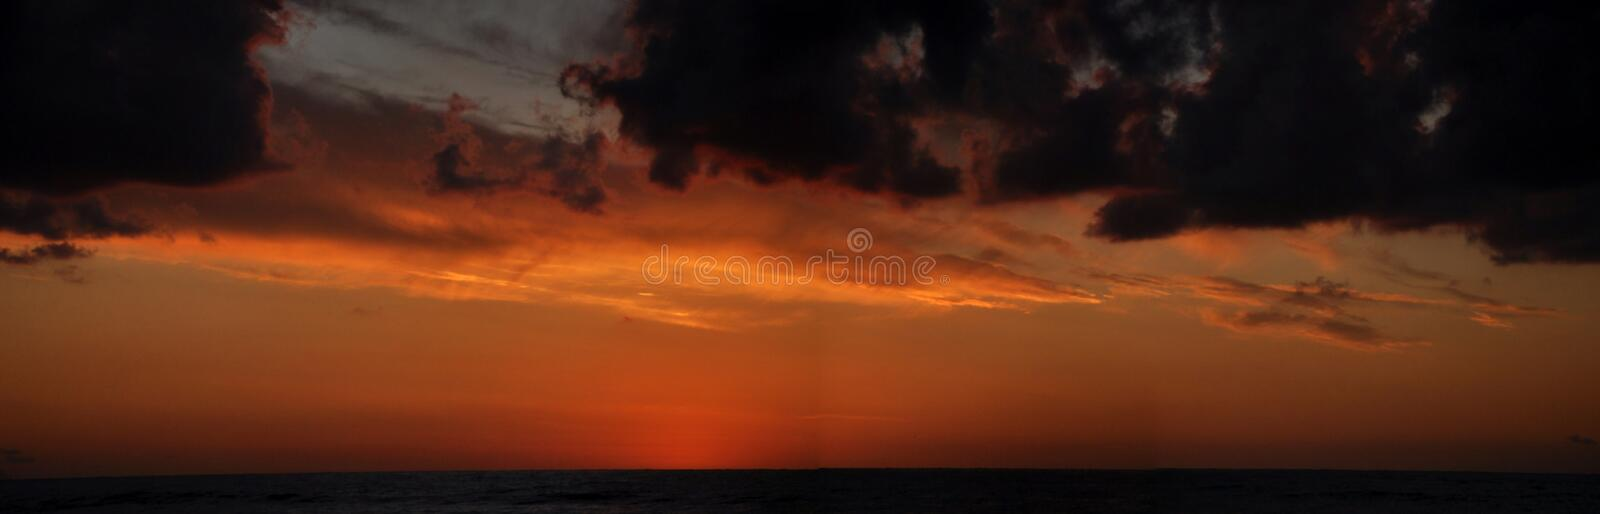 Cloudy Sunset in Cefalu, Sicily. Ornage sunset on a beach of sicily stock photography